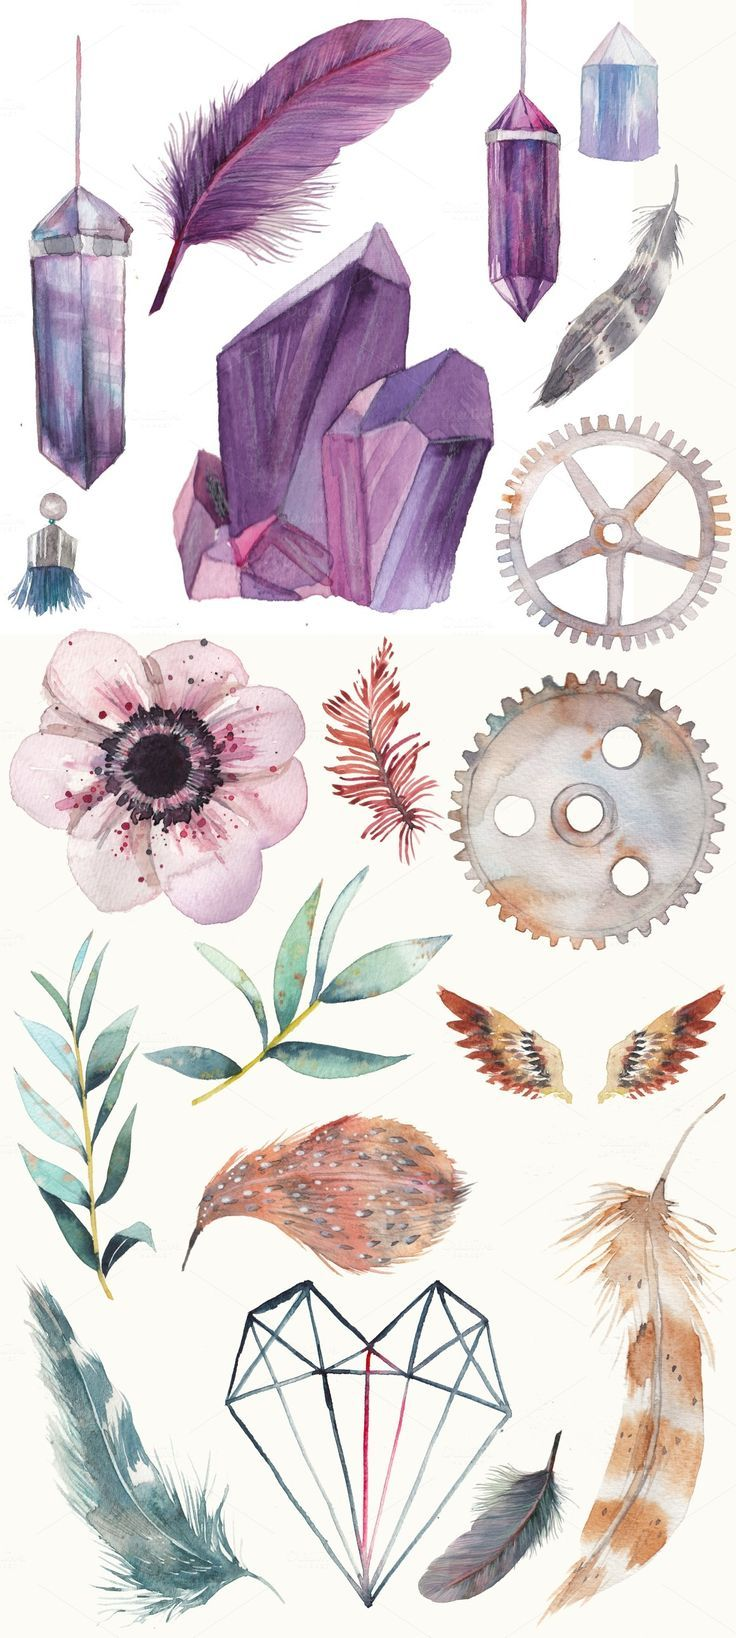 Watercolor flowers png clipart illustrations on creative market - Watercolor Crystal And Feather Illustrations By Eisfrei On Creative Market